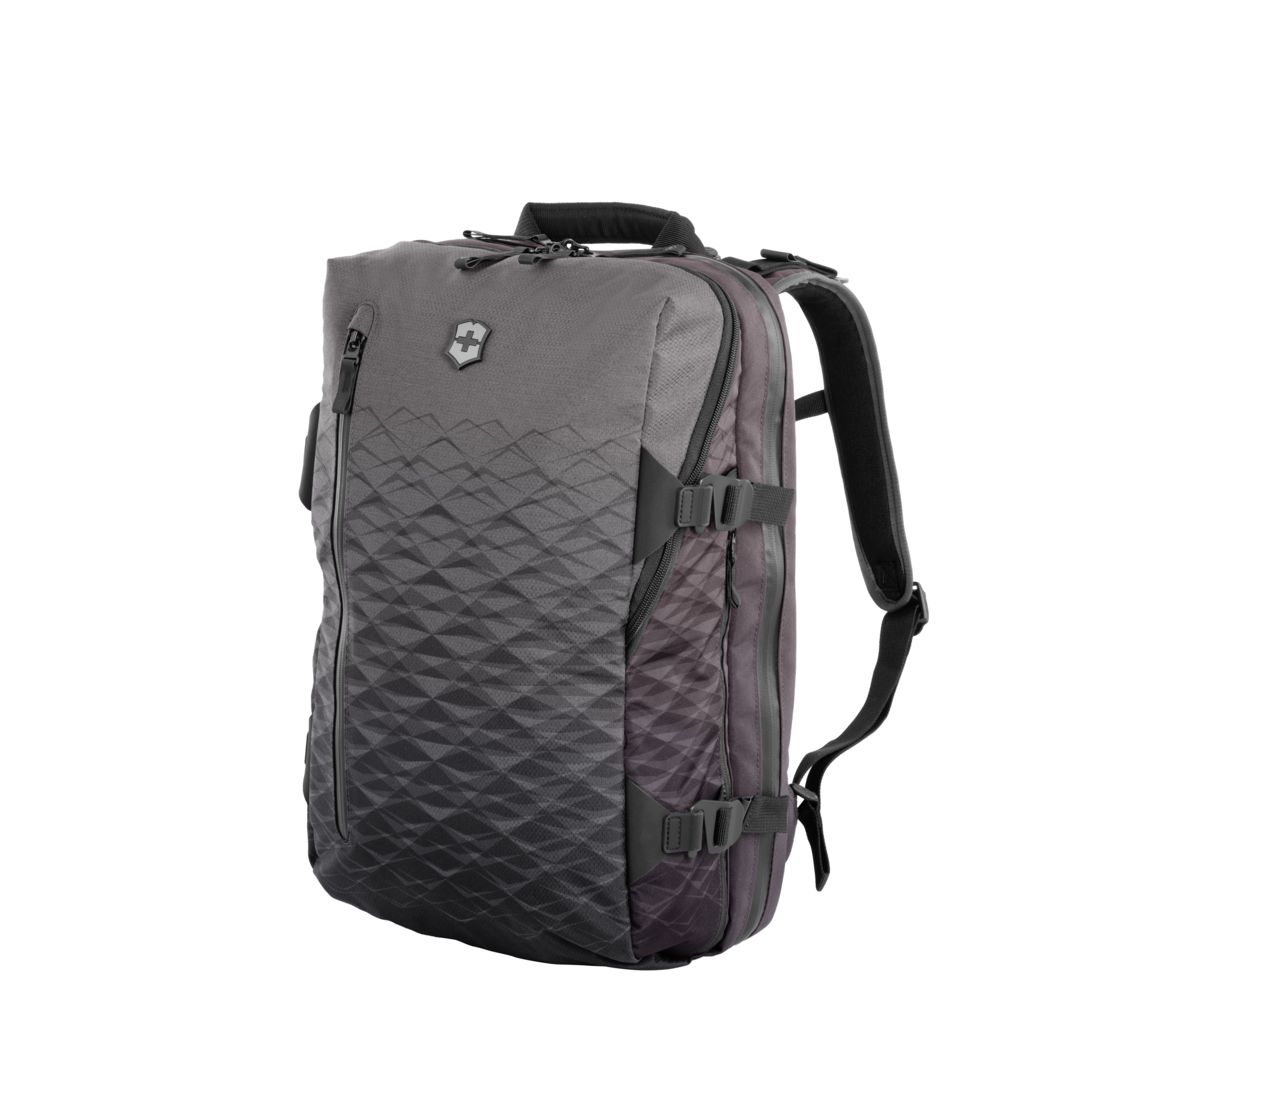 Vx Touring 17''Laptop Backpack-601490